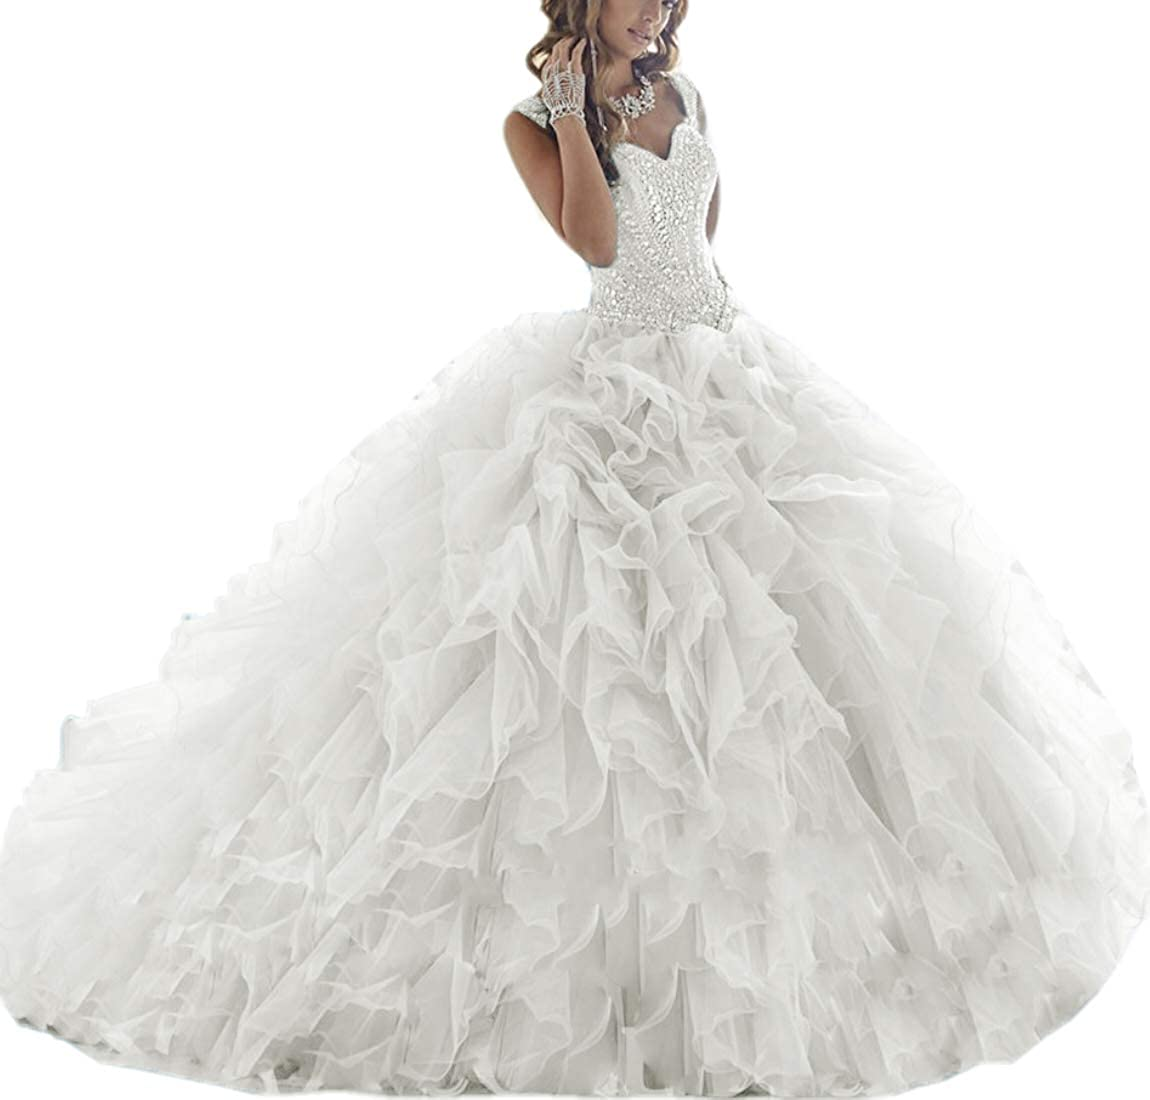 Ivory APXPF Women's Crystals Beaded Organza Ruffle Quinceanera Dress Sweet 16 Ball Gown Prom Dress